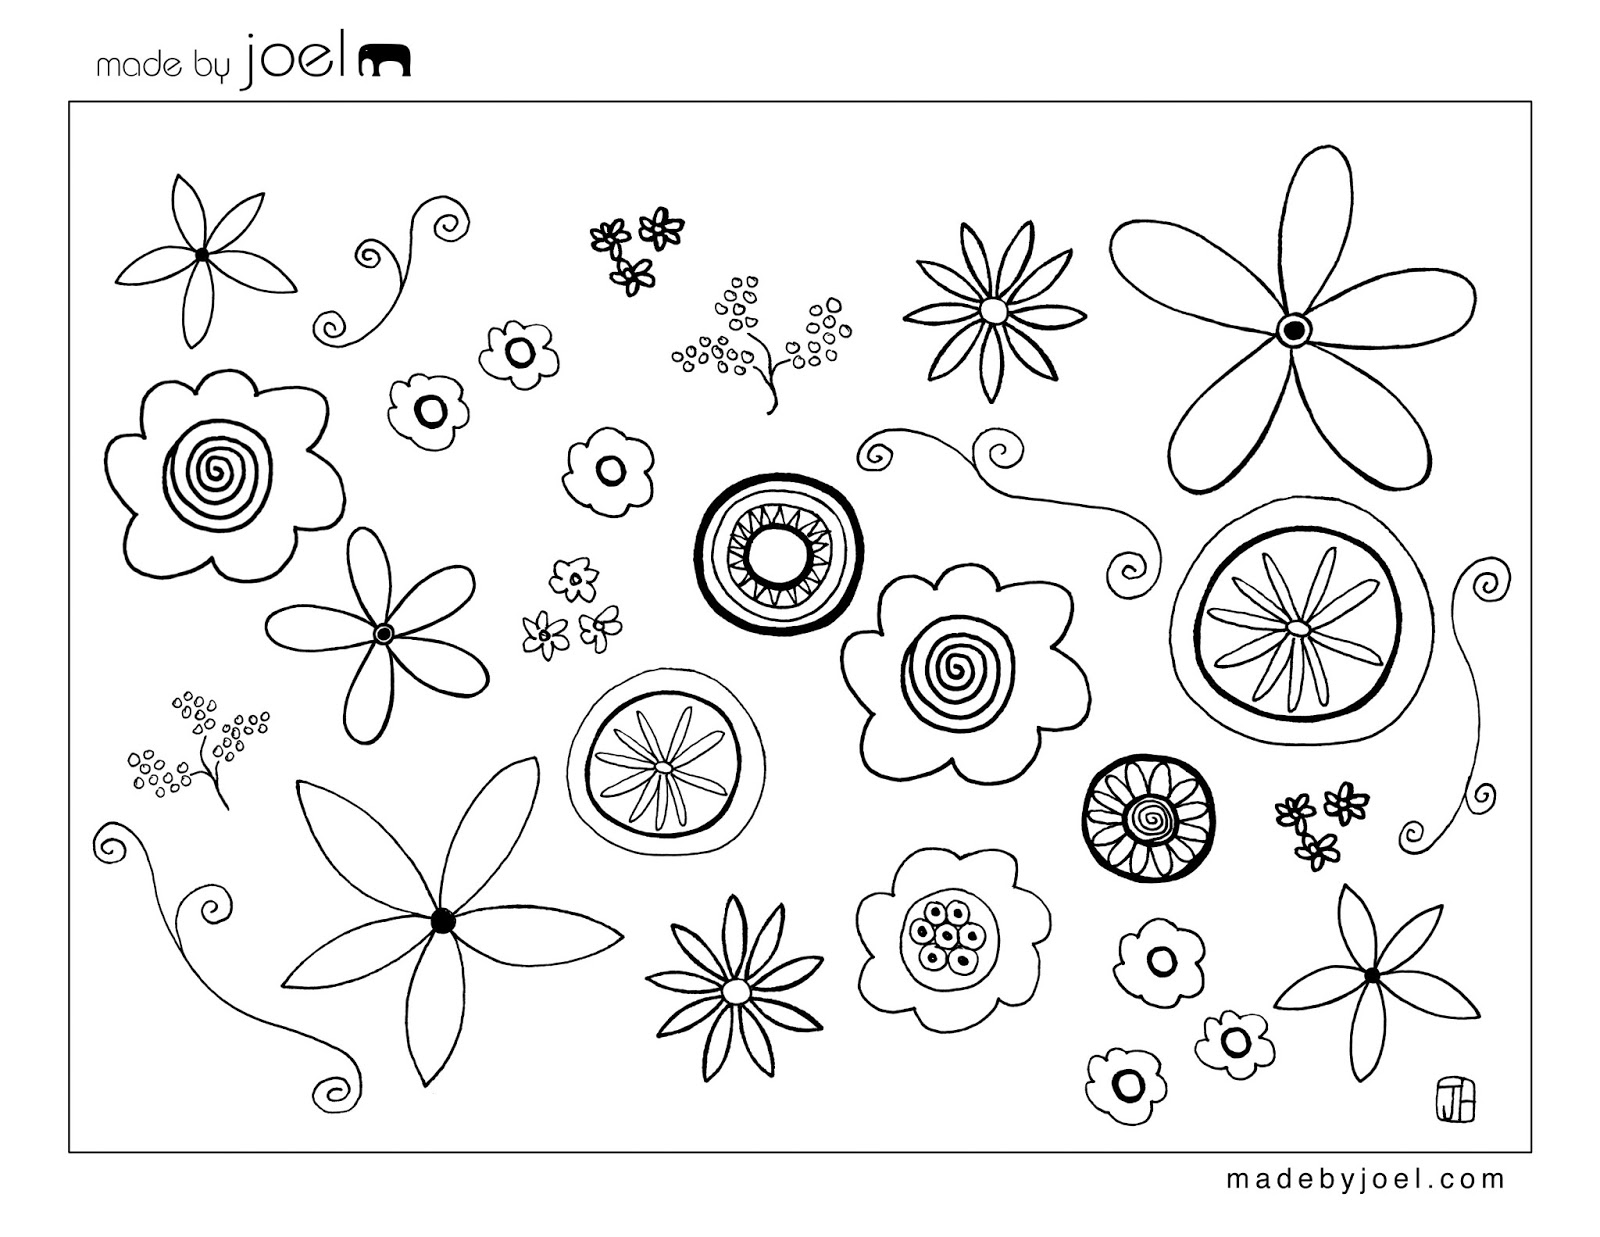 free pages templates - early play templates flower templates free